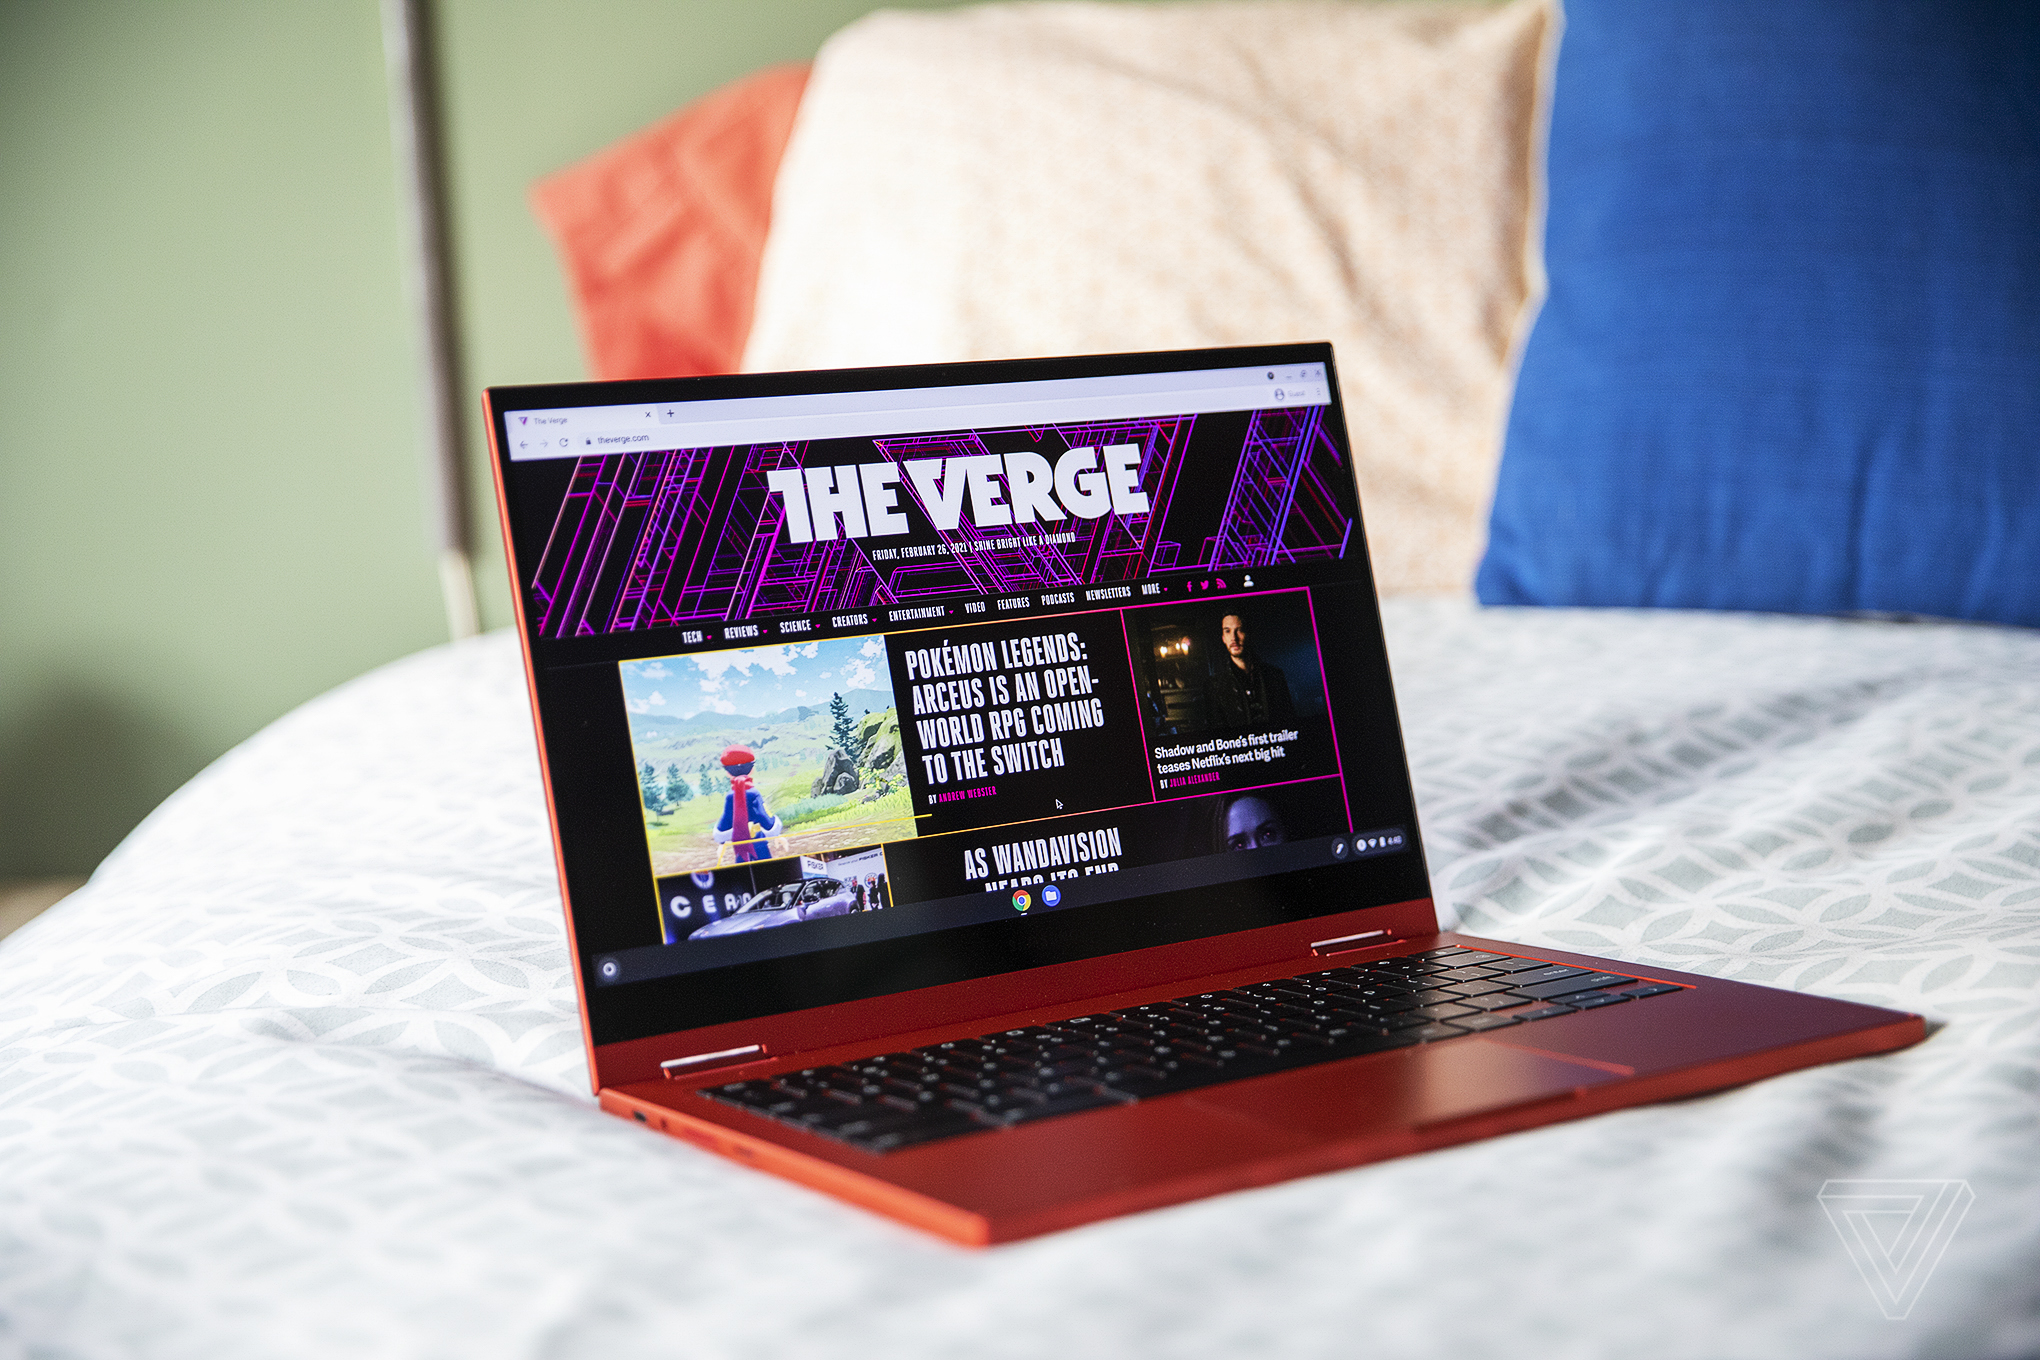 The Samsung Galaxy Chromebook open, angled slightly to the right on the corner of a bed. The screen displays The Verge homepage.